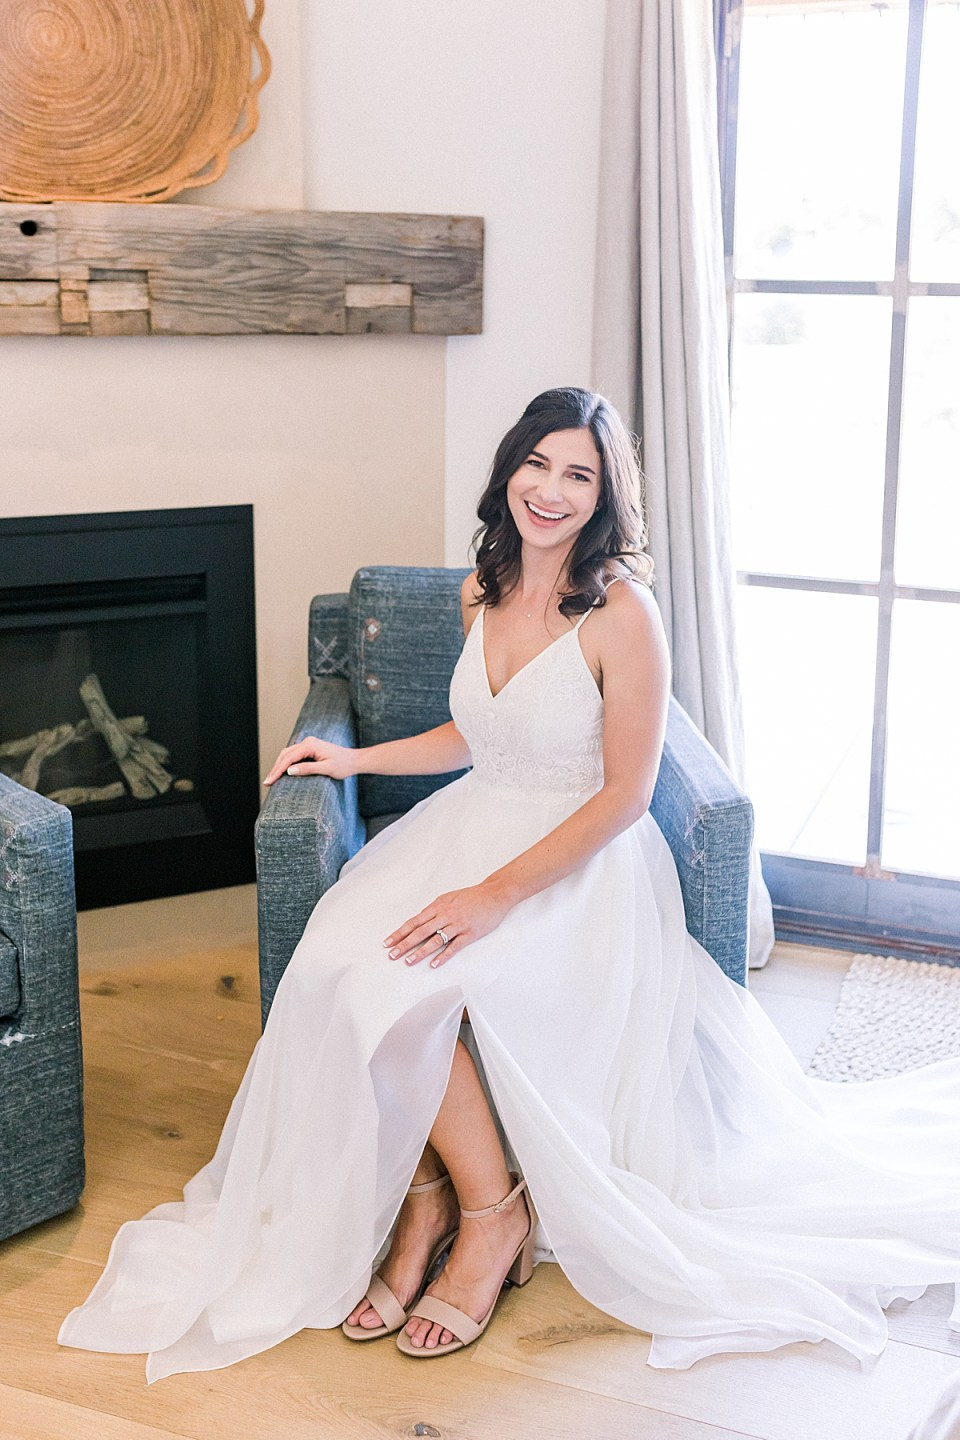 Lauren smiling at the camera while sitting in a chair after just getting dressed in her wedding gown during the couple's San Luis Obispo Farm Wedding